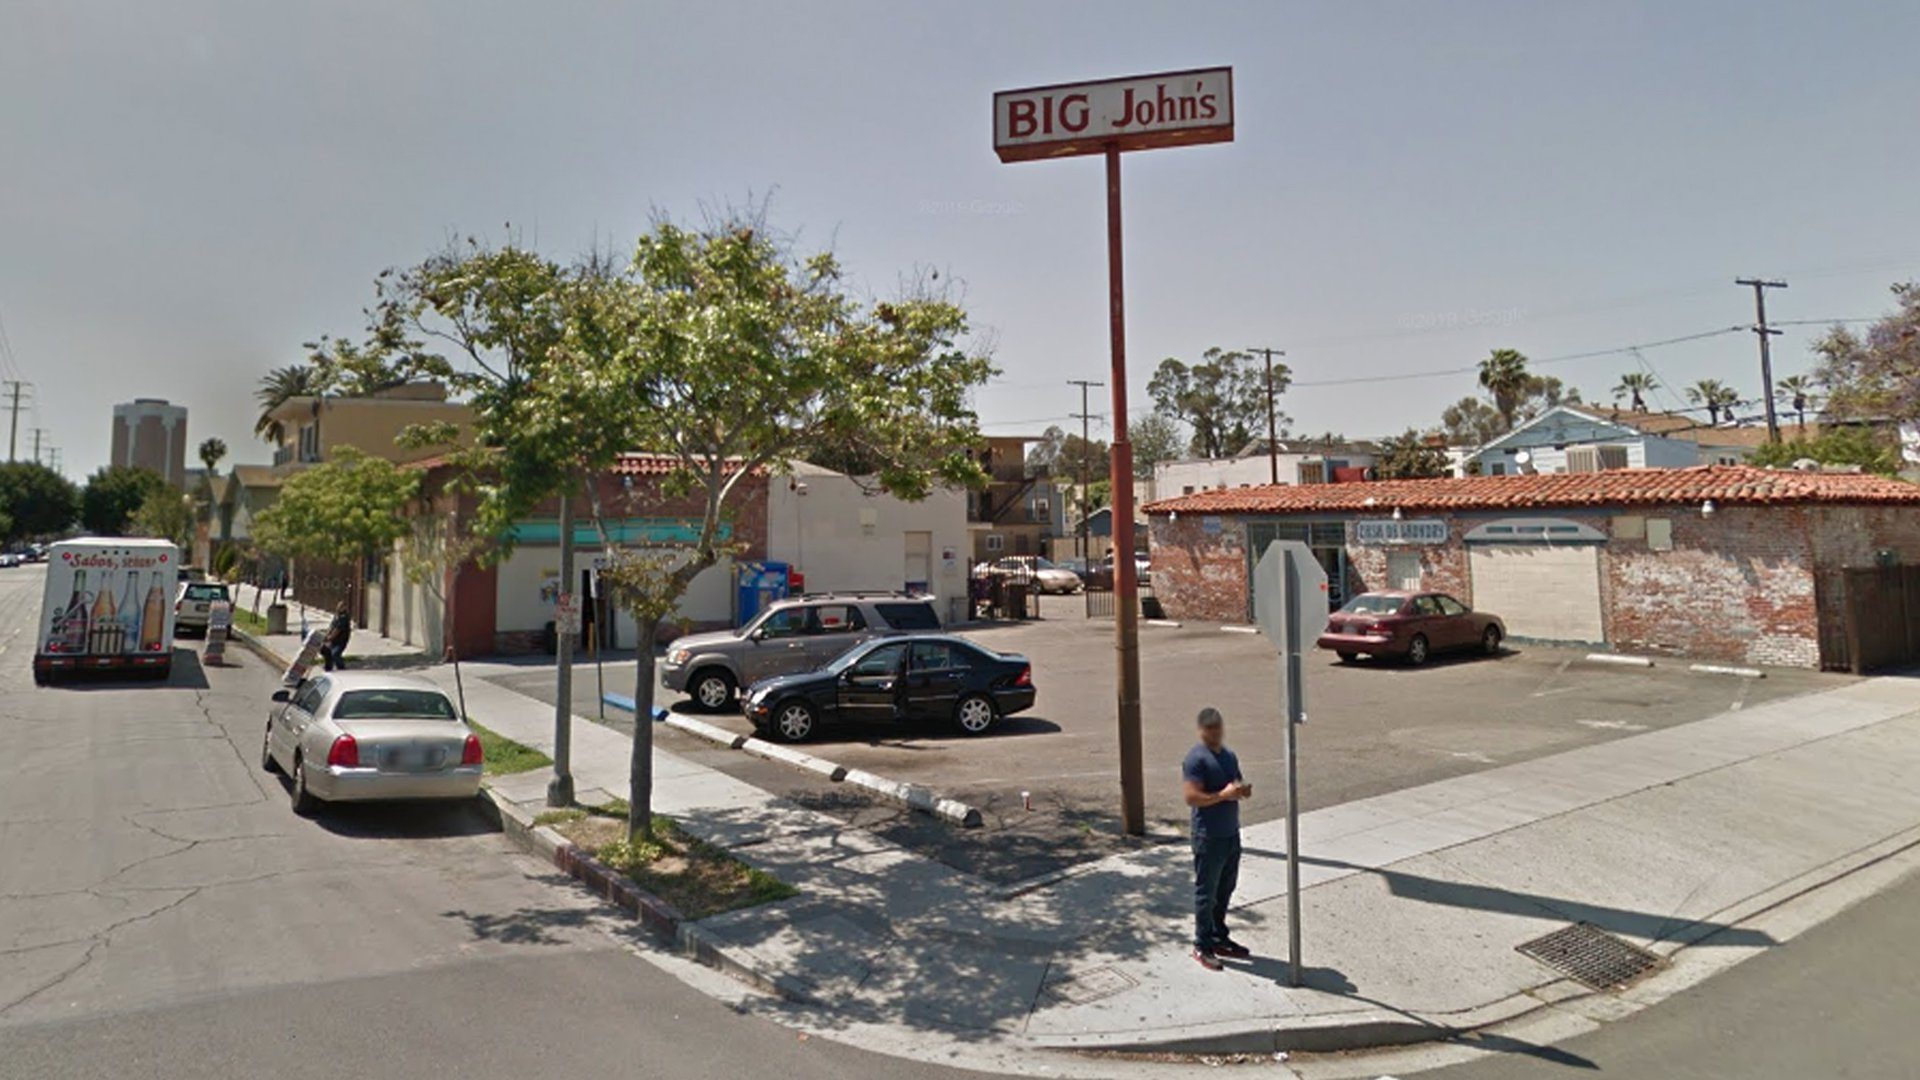 Big John's Liquor in Long Beach is seen in a Google Maps Street View image.